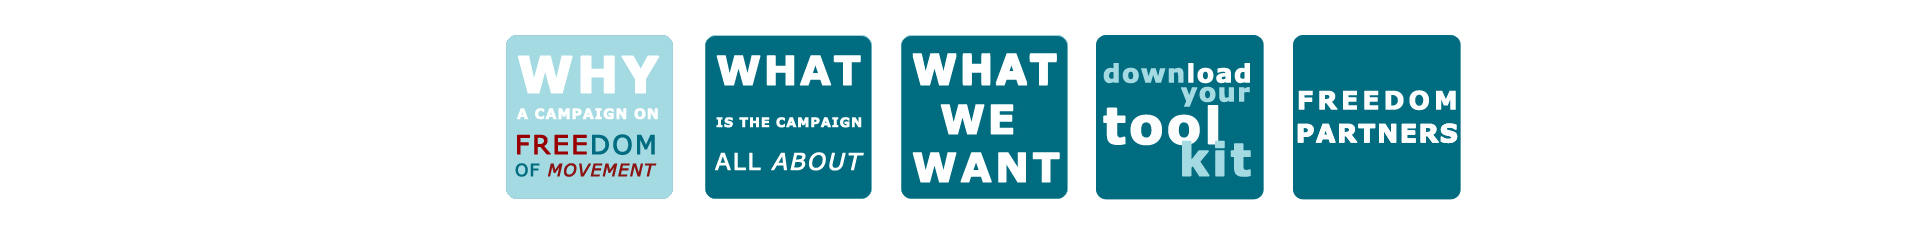 Why - Campaign on Freedom of Movement - What is the campaign all about - What we want - Download your tool kit - Freedom Partners